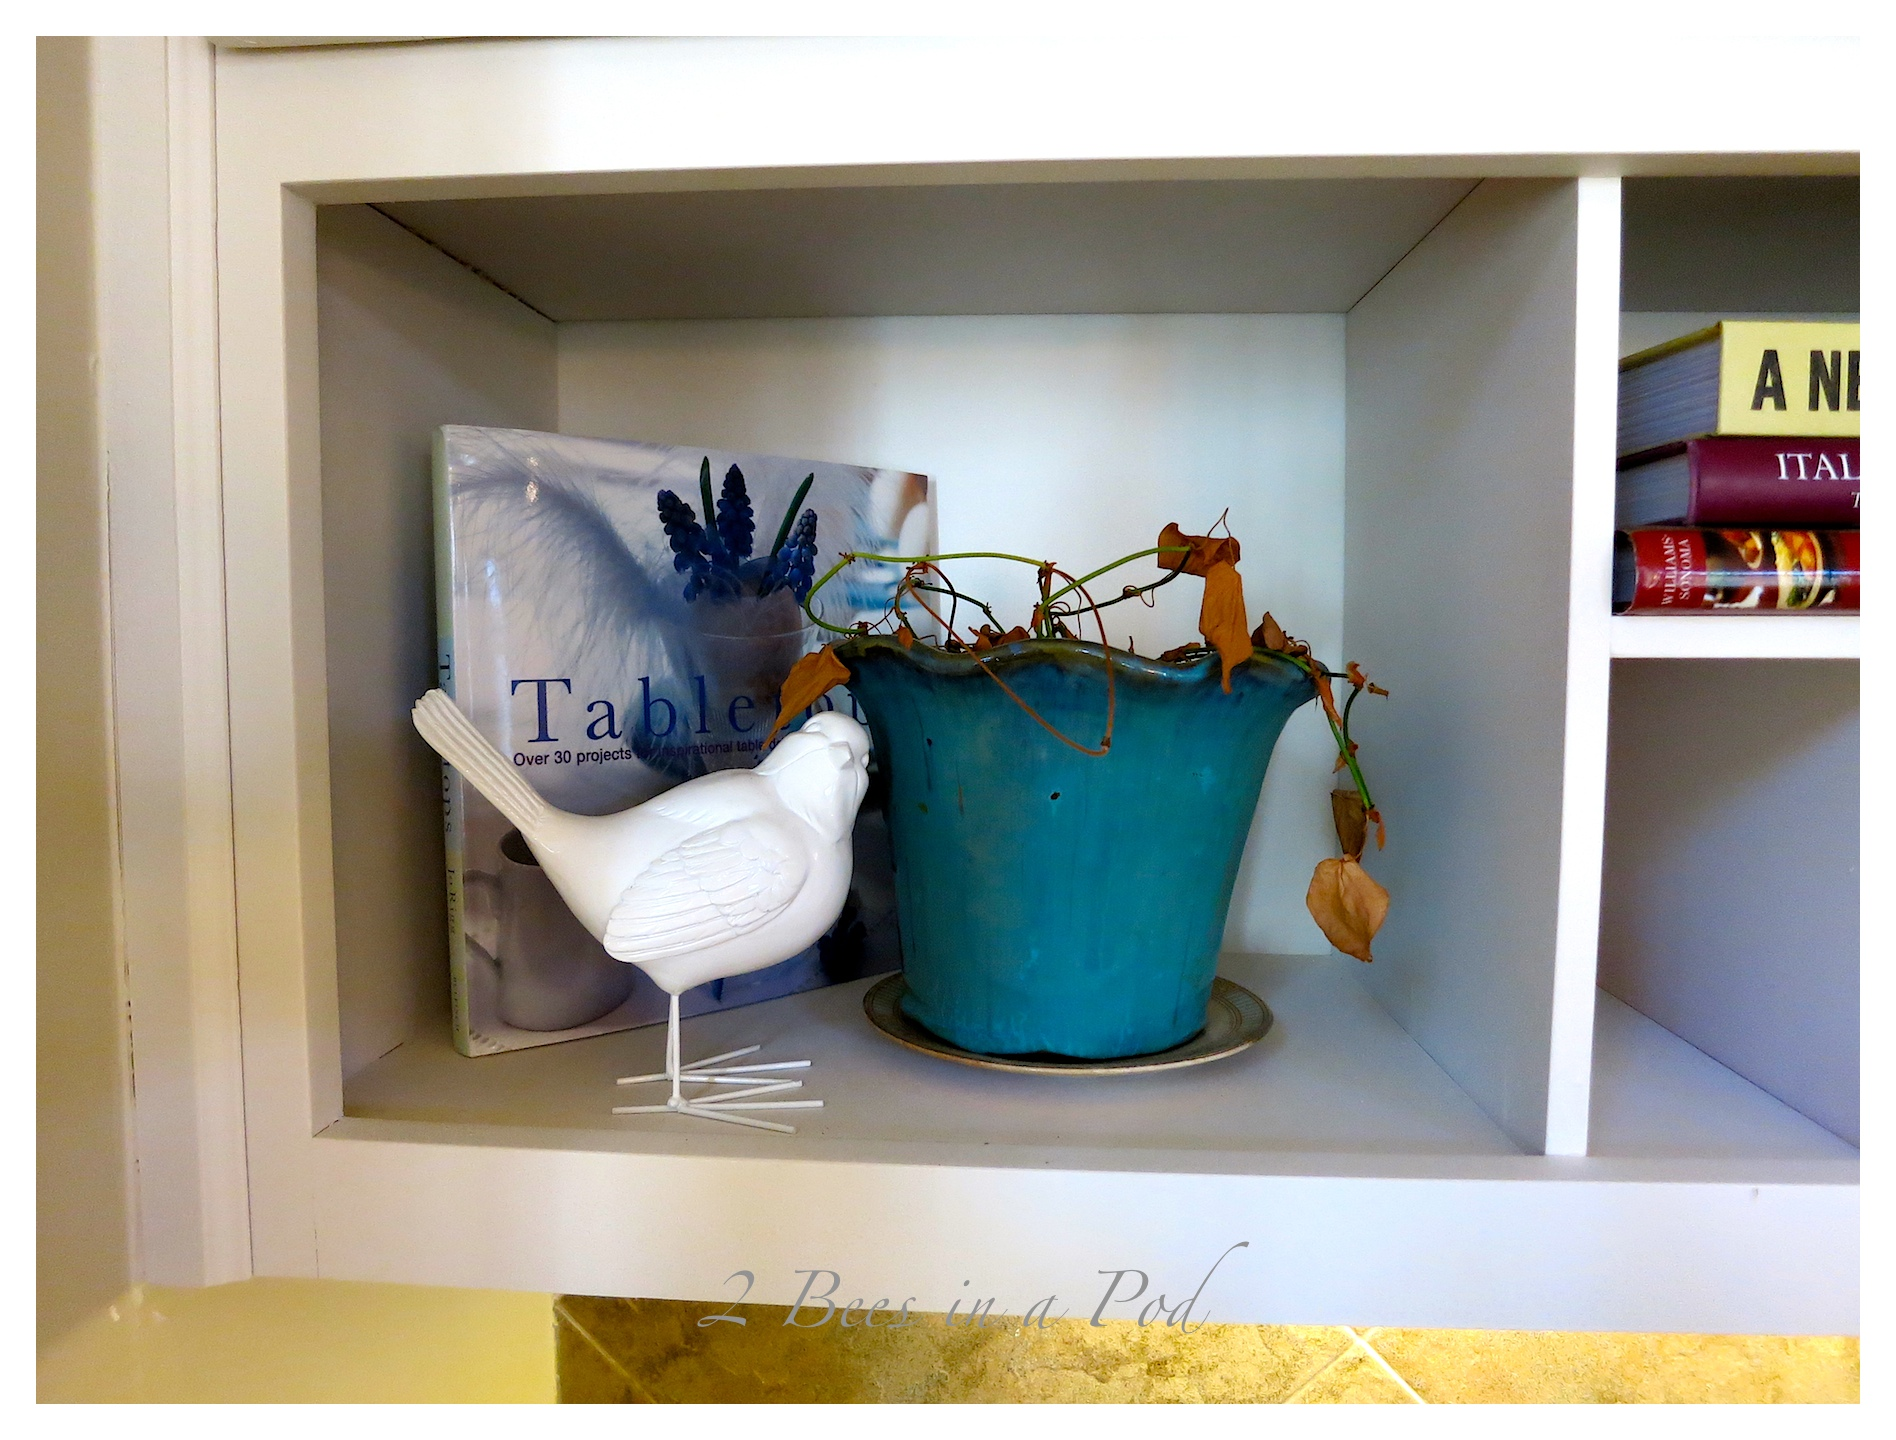 Kitchen Desk area - spruce up. Brought in aqua and turquoise glass as well as vintage items and moss.